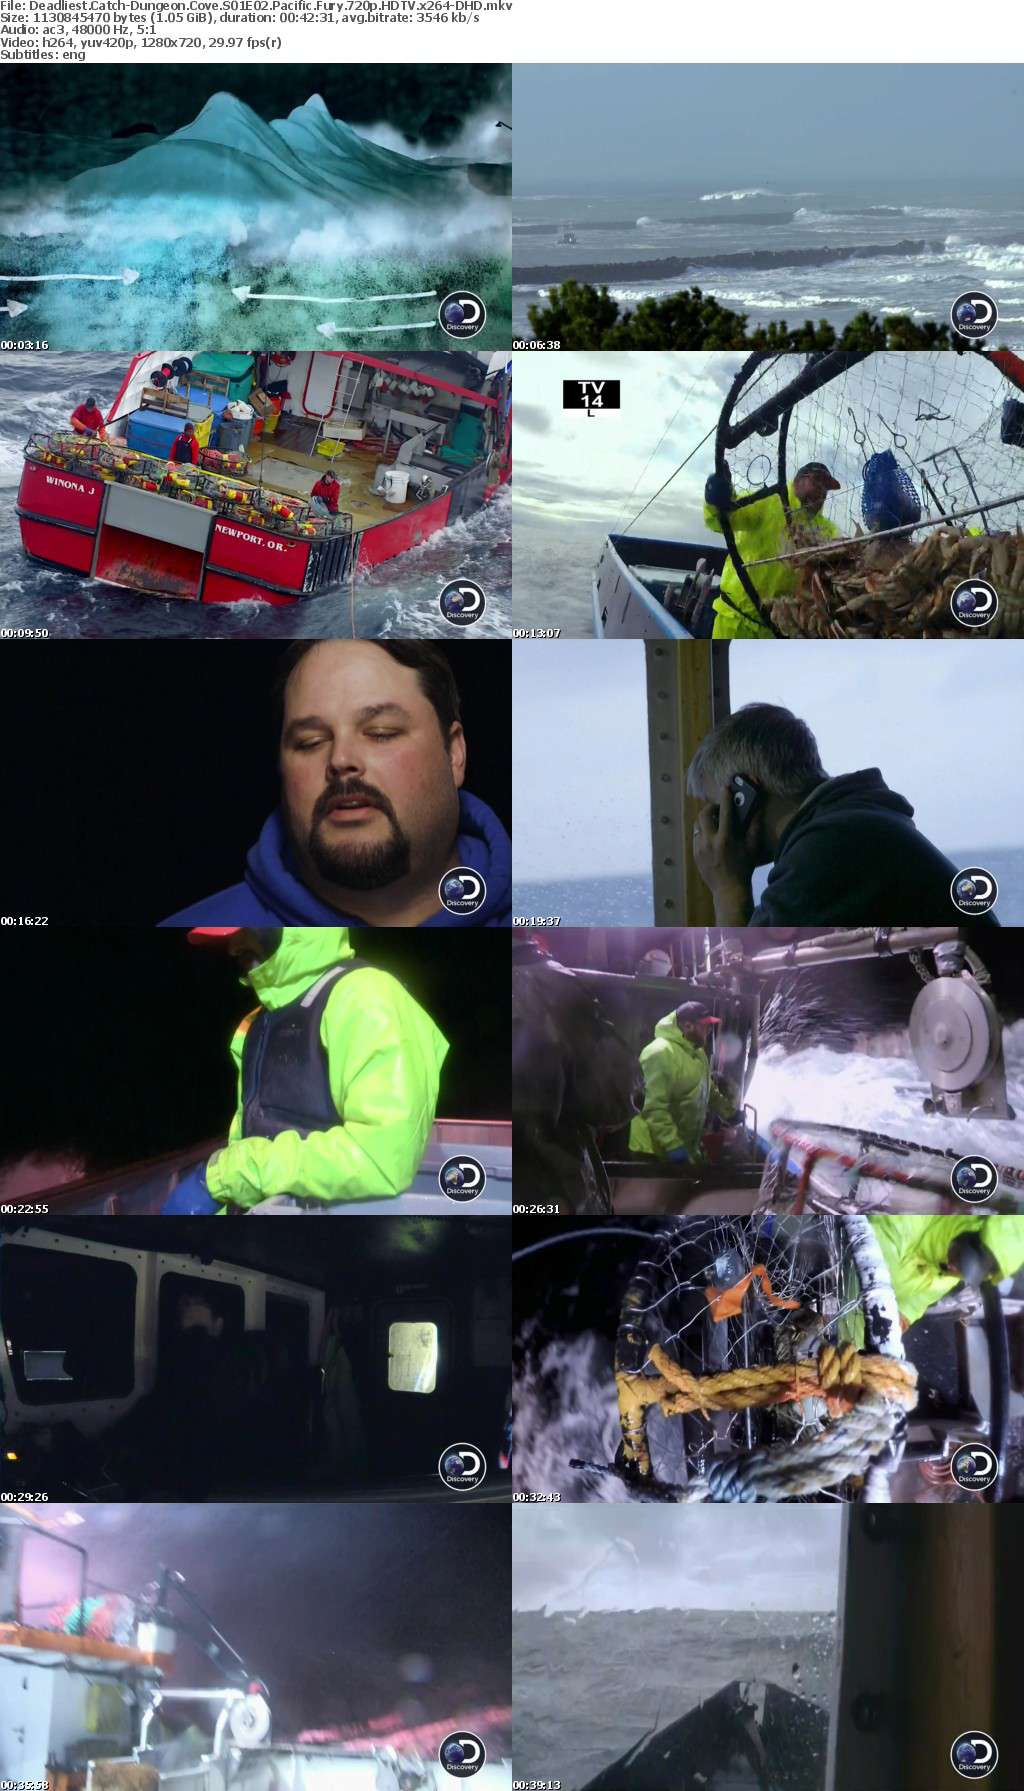 Deadliest Catch-Dungeon Cove S01E02 Pacific Fury 720p HDTV x264-DHD